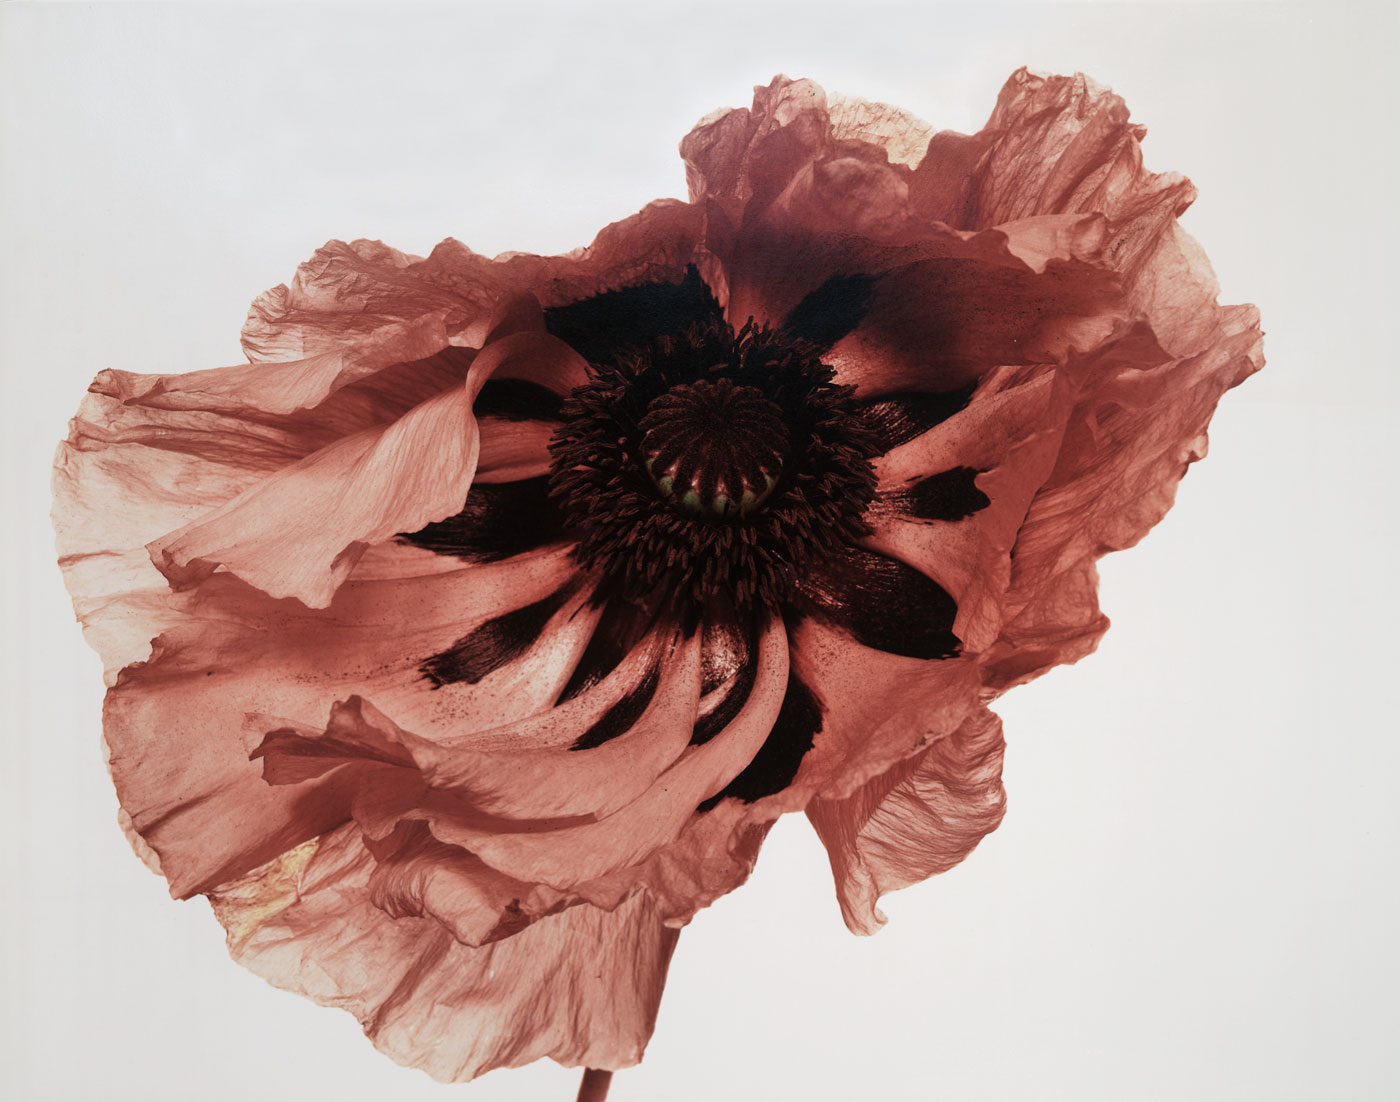 Exhibition 'Irving Penn Resonance' at the Palazzo Grassi Venice